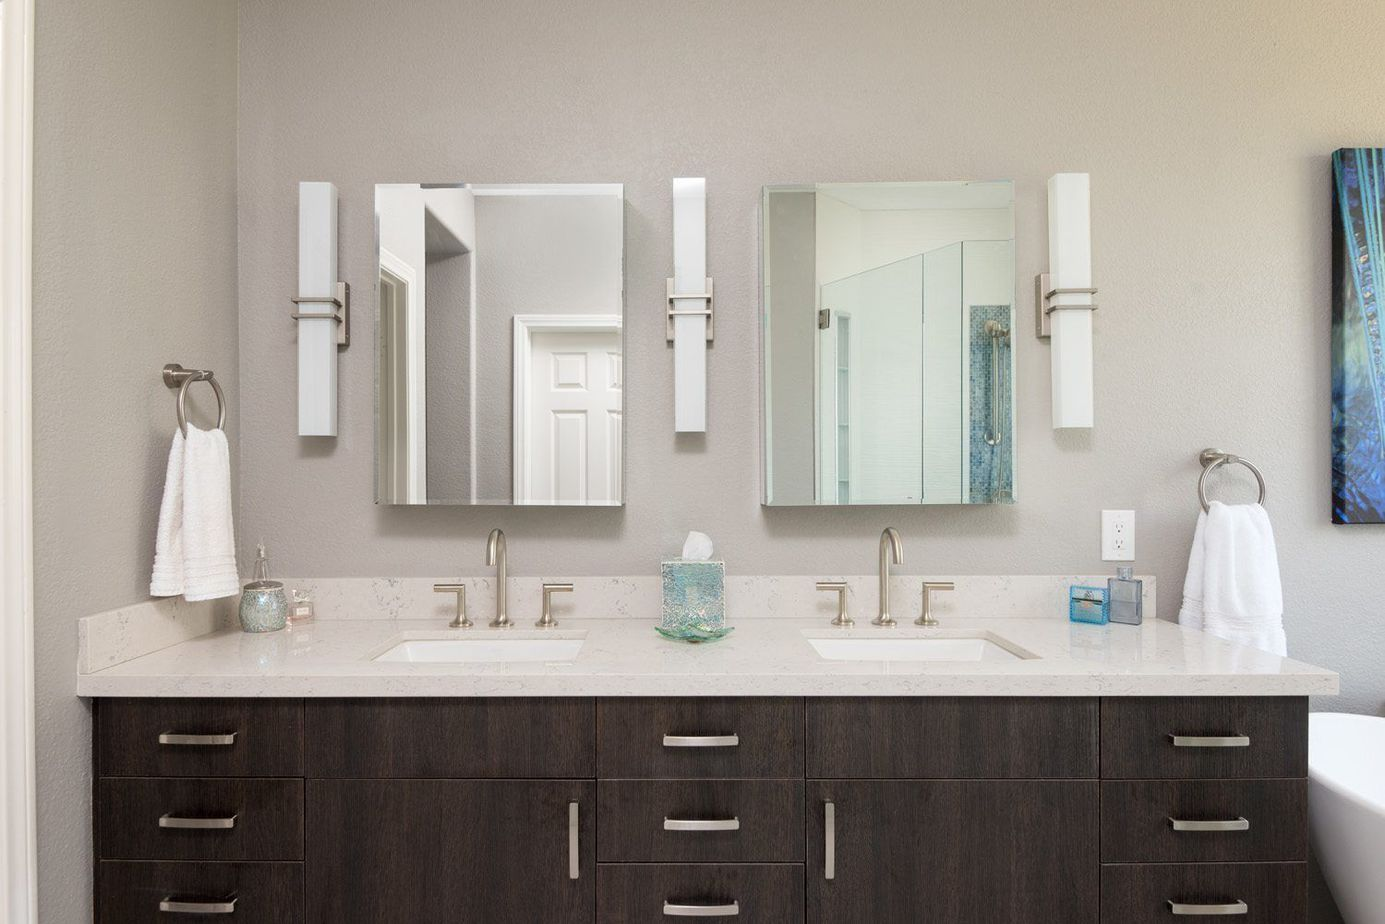 bathroom remodeling contractor. Bathroom Remodeling Contractor San Marcos Ca -